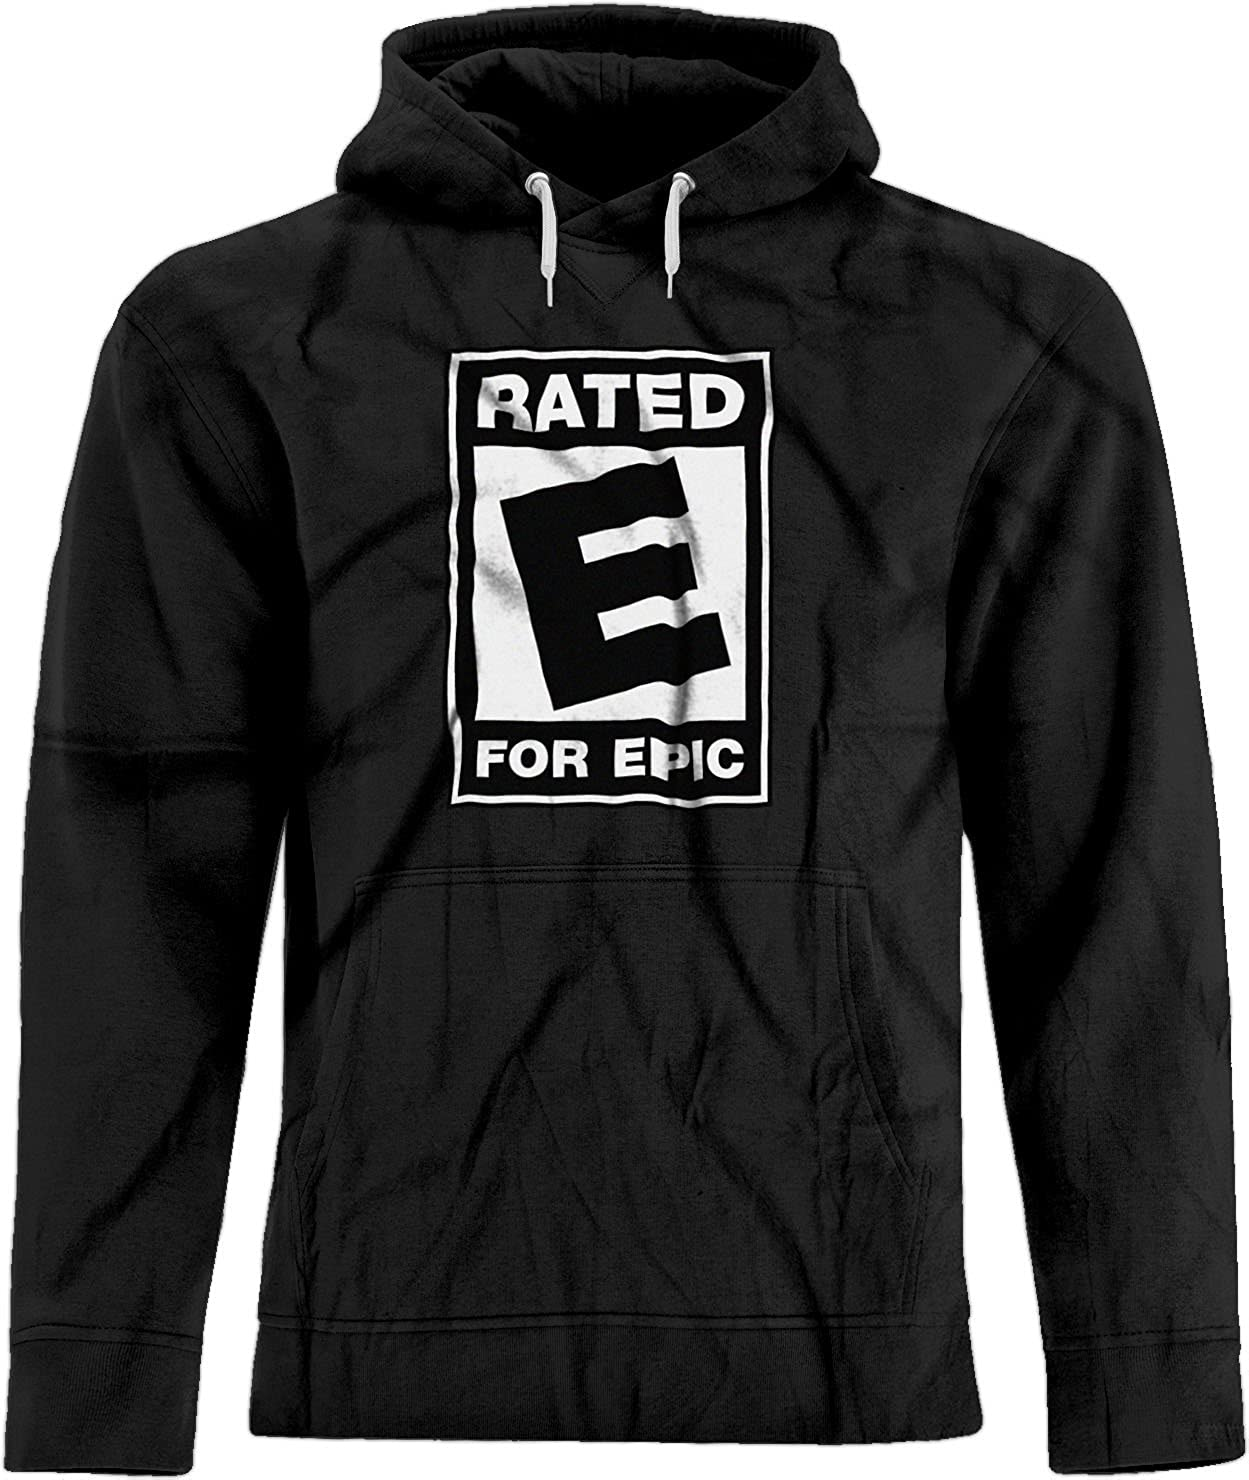 BSW Mens Rated E for Epic ESRB Video Entertainment Logo Hoodie